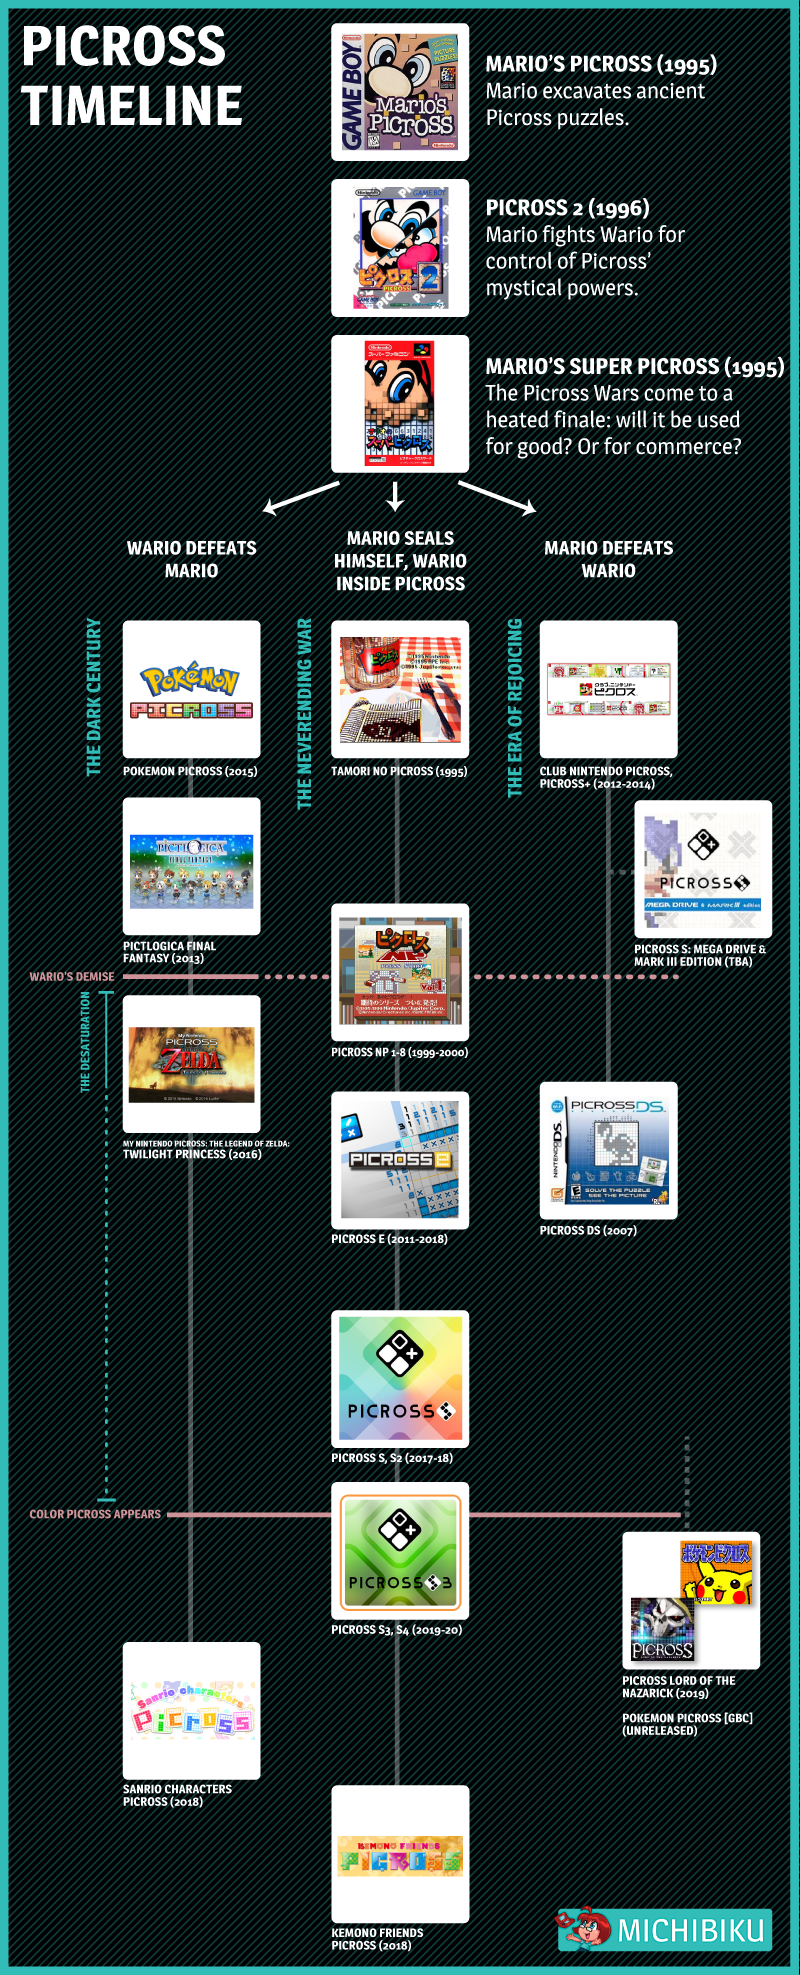 Picross Timeline